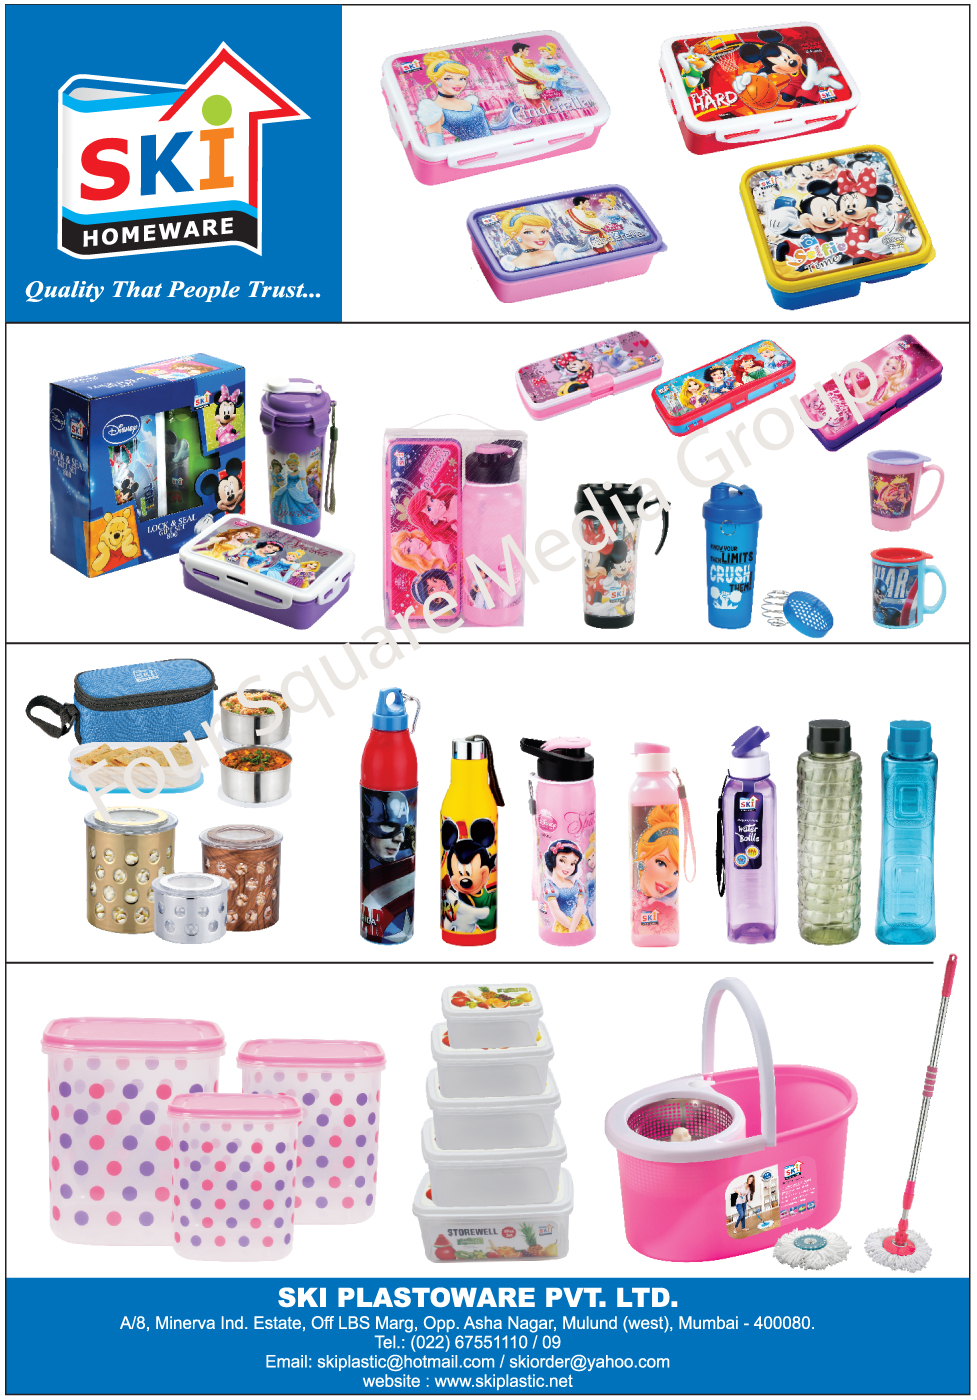 Insulated Bottles, Sipper Water Bottles, Lunch Boxes, Pencil Boxes, Insulated Lunch Boxes, Vacuum Insulated Water Bottles, Storage Containers, Dustbins, Buckets